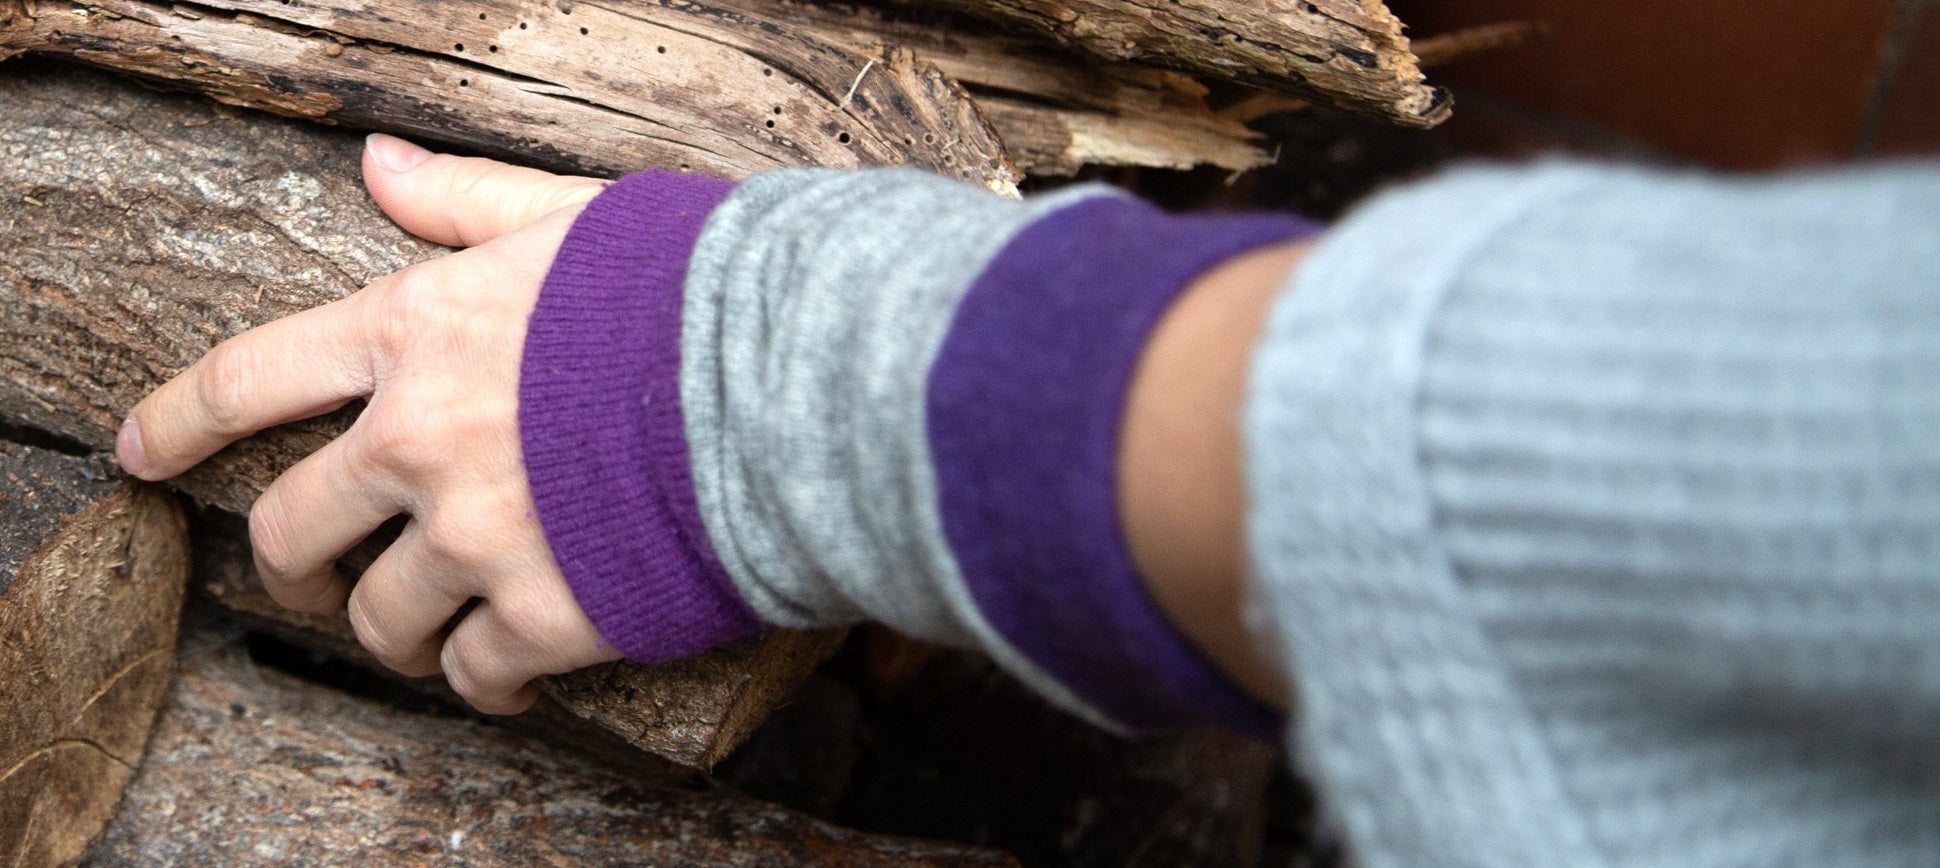 Turtle Doves Cashmere Wrist Warmers